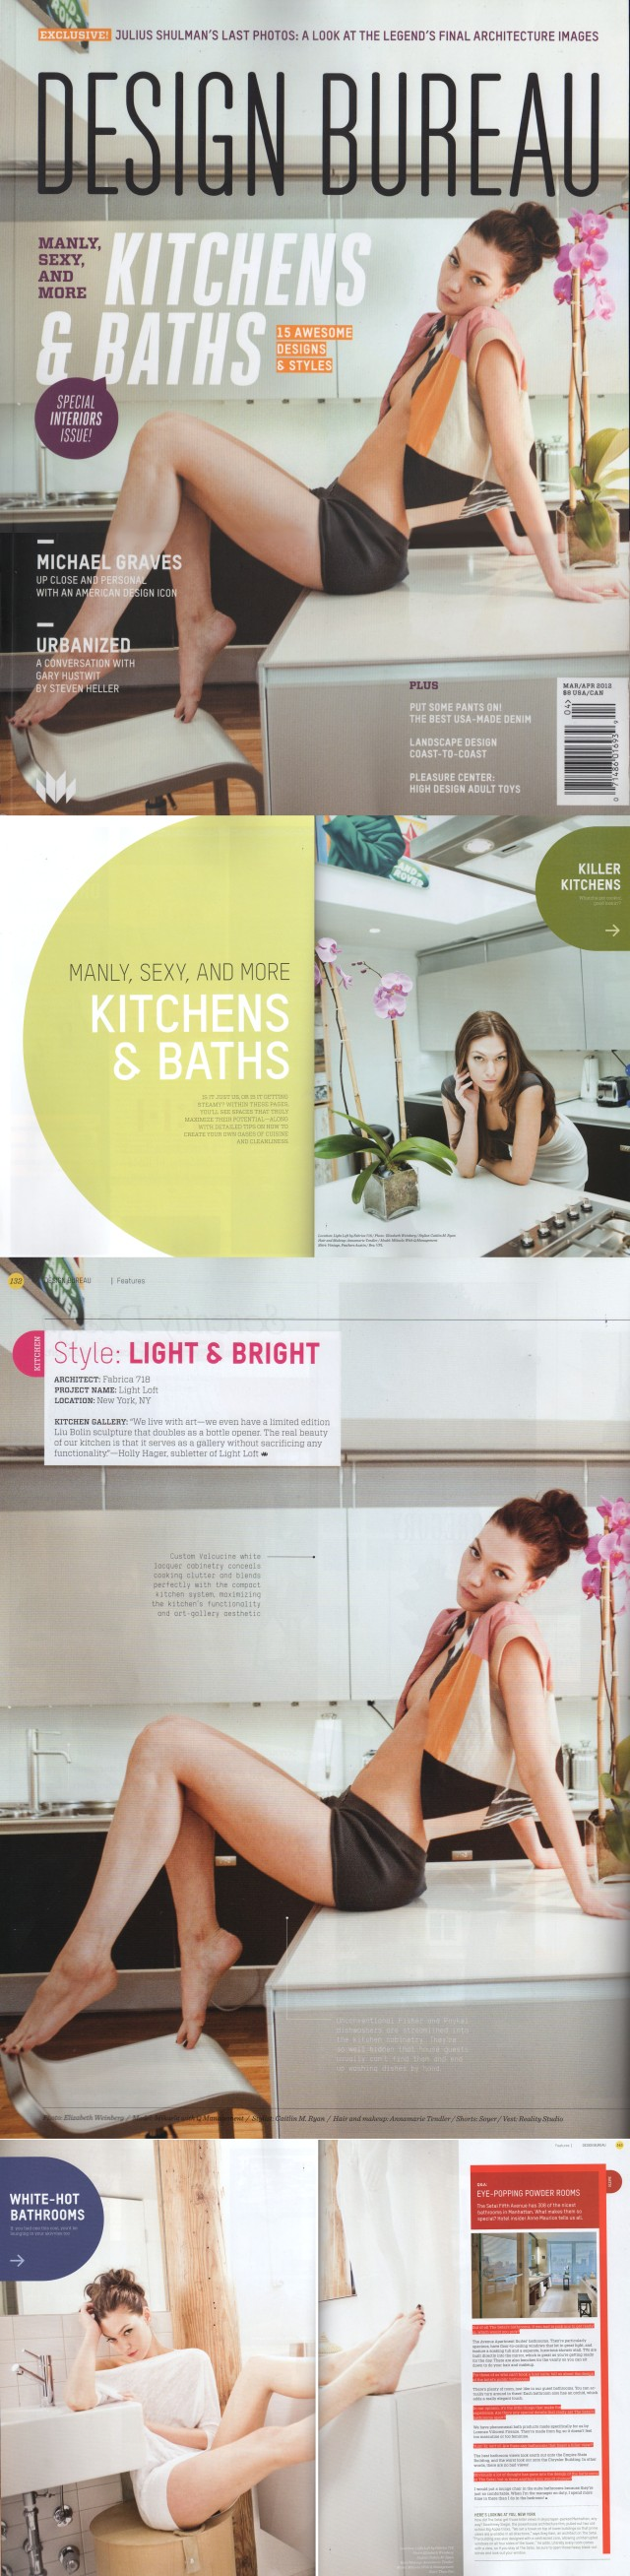 design bureau kitchens